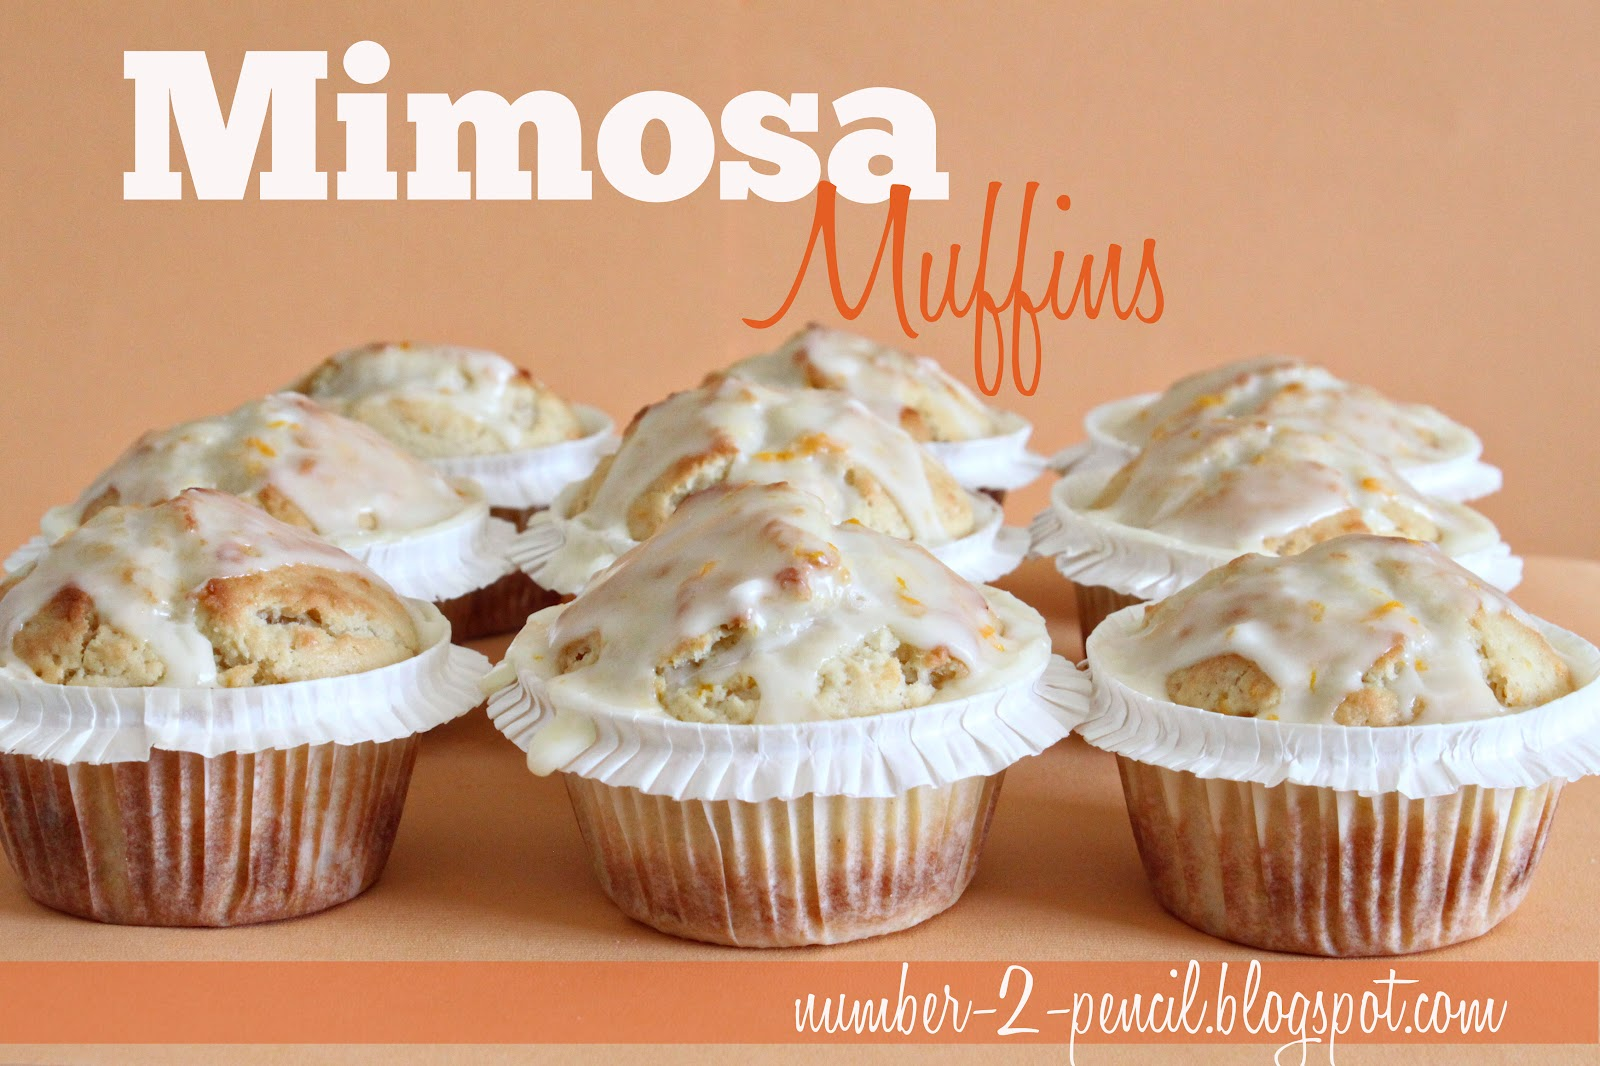 Mimosa Muffins - Champagne Muffins with a Sweet Orange Glaze - No. 2 ...